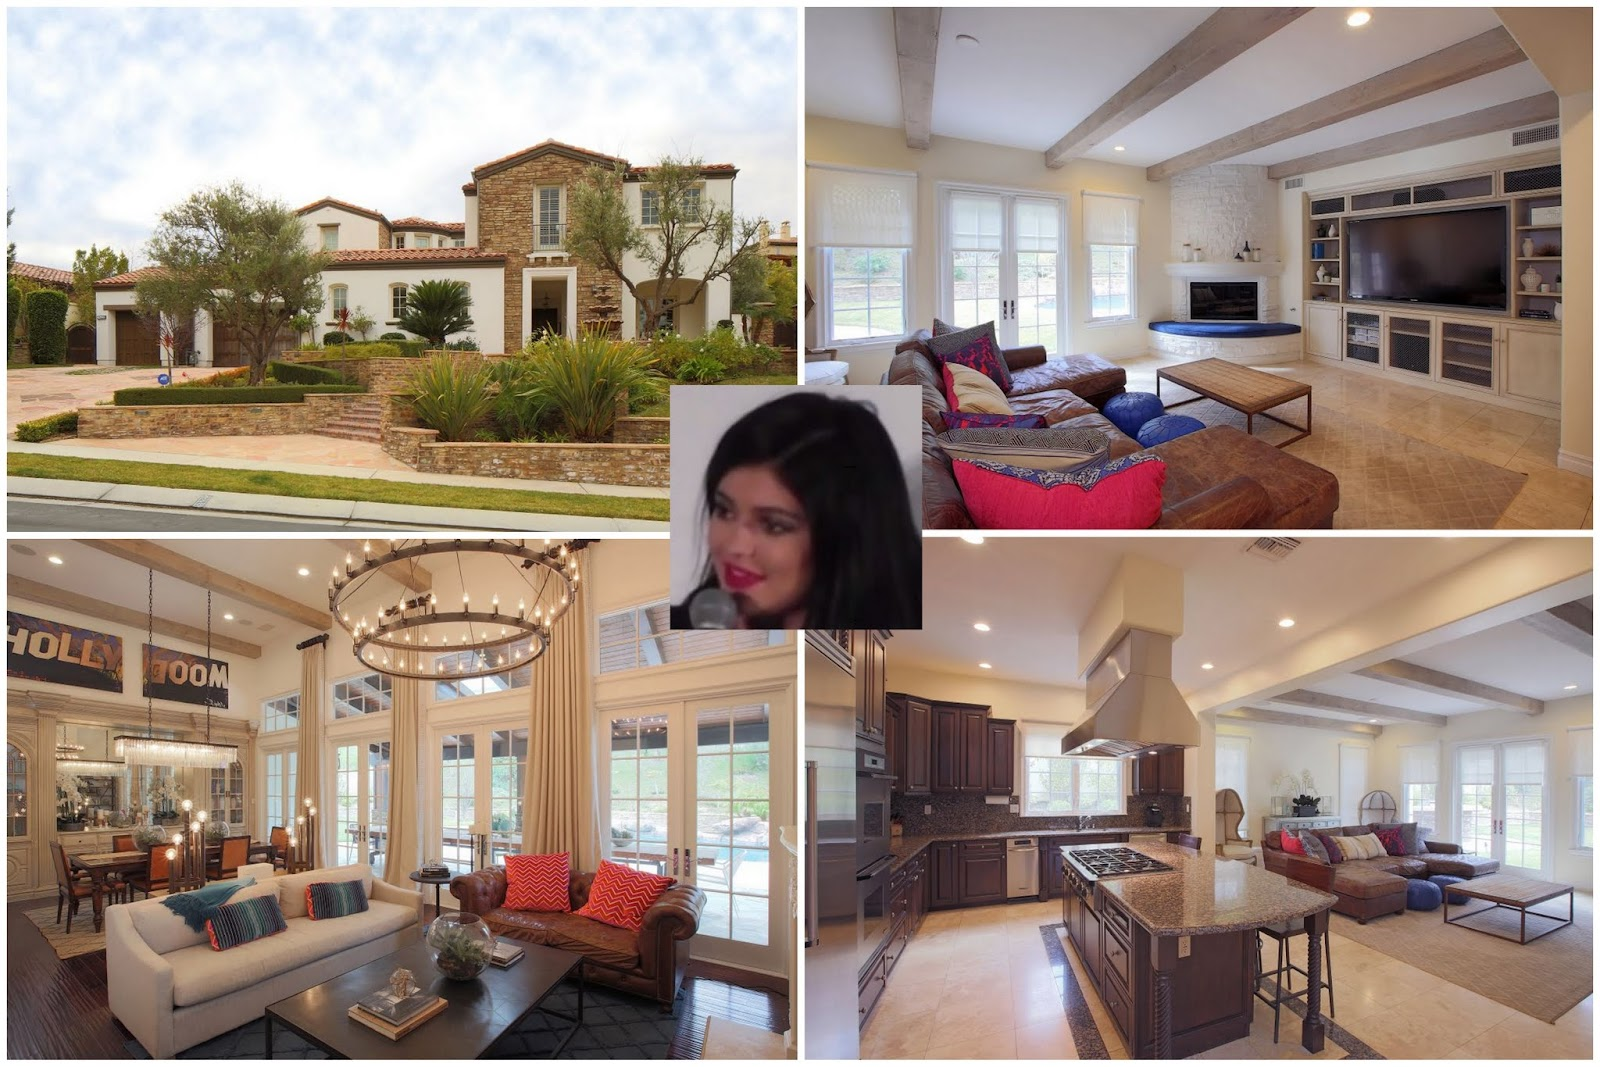 Watch Kylie Jenner is selling her house. Want to look inside video